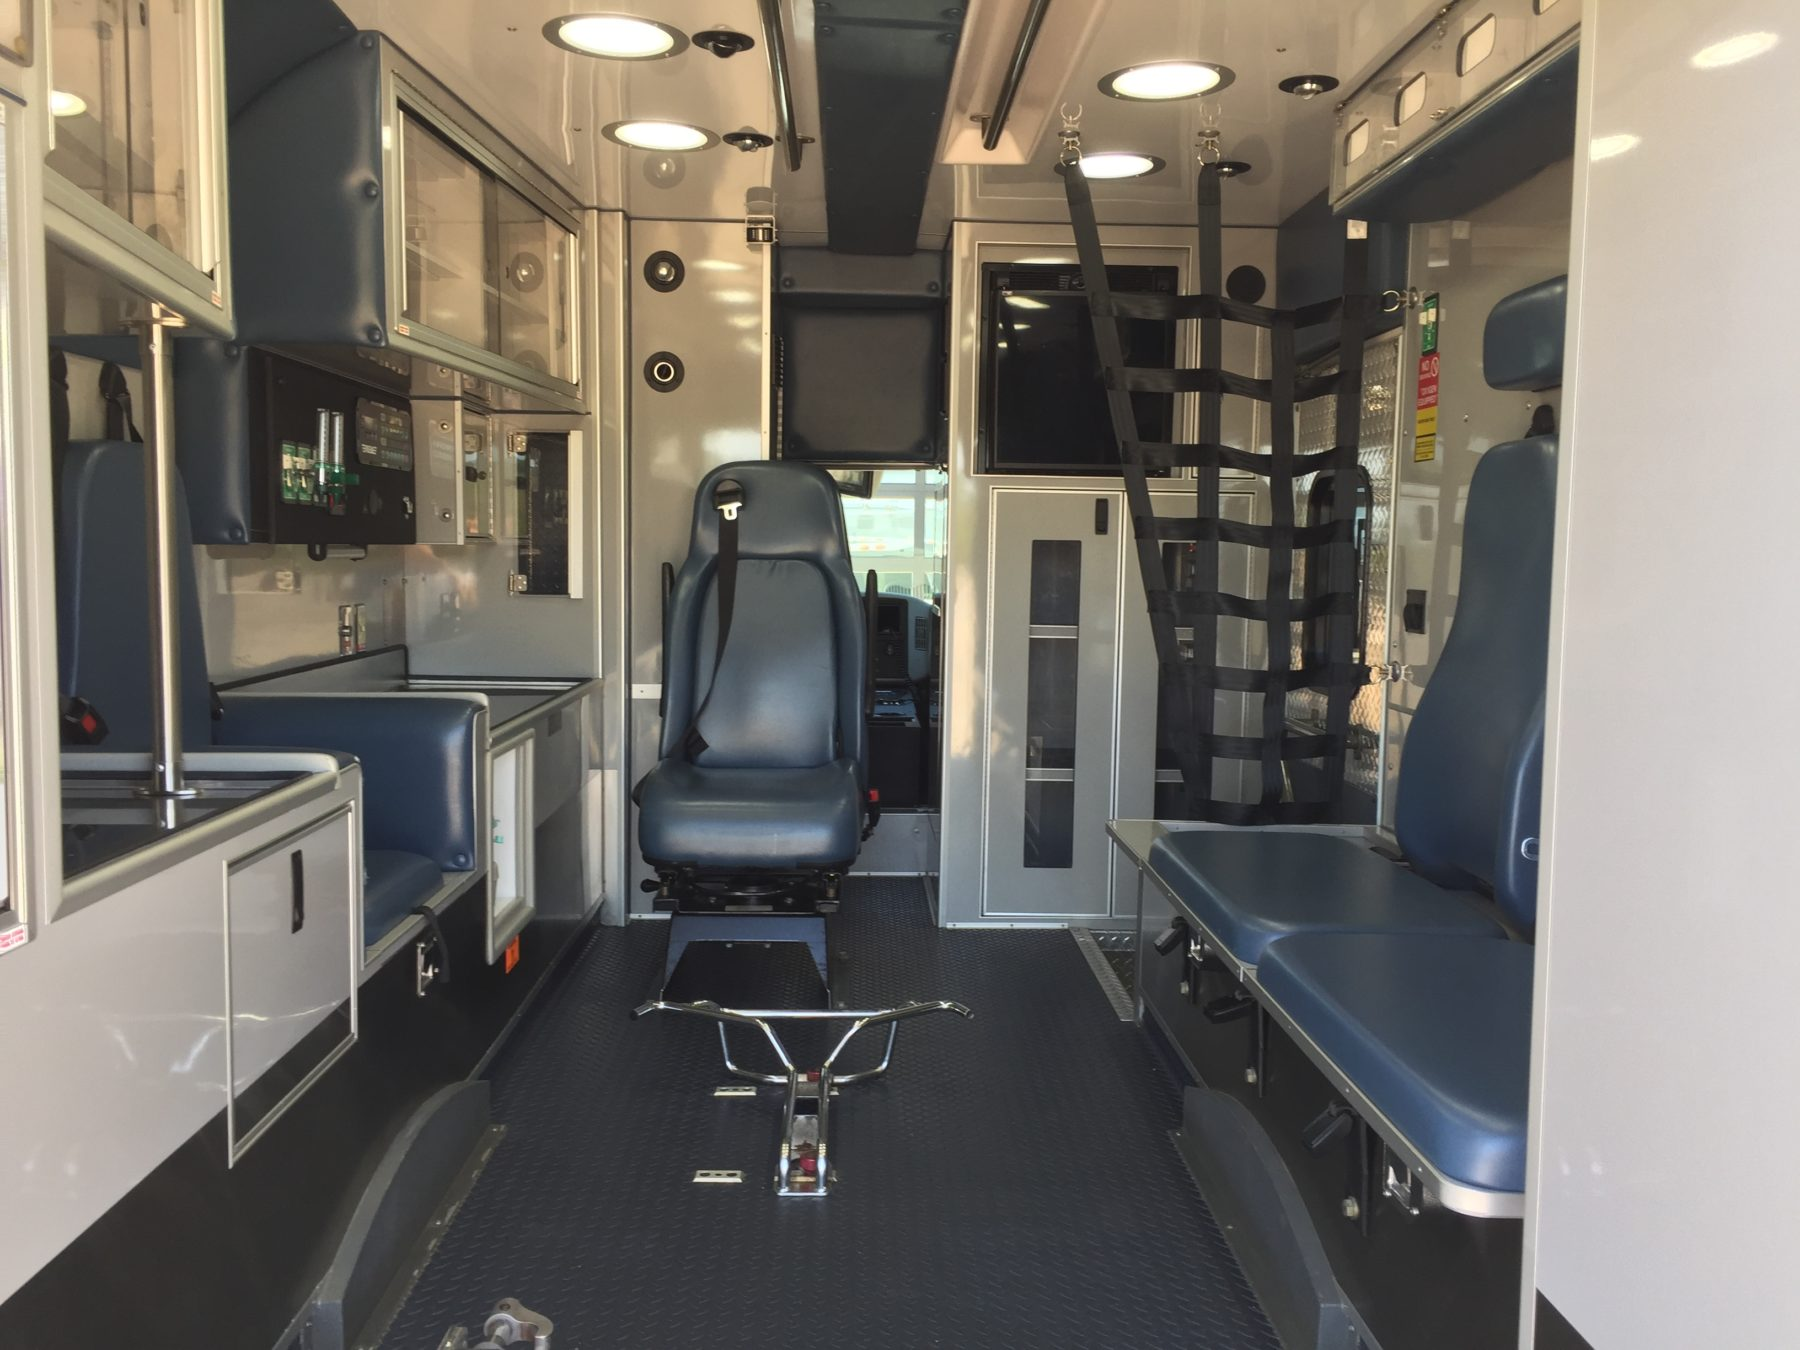 2011 International 4300 Heavy Duty Ambulance For Sale – Picture 2